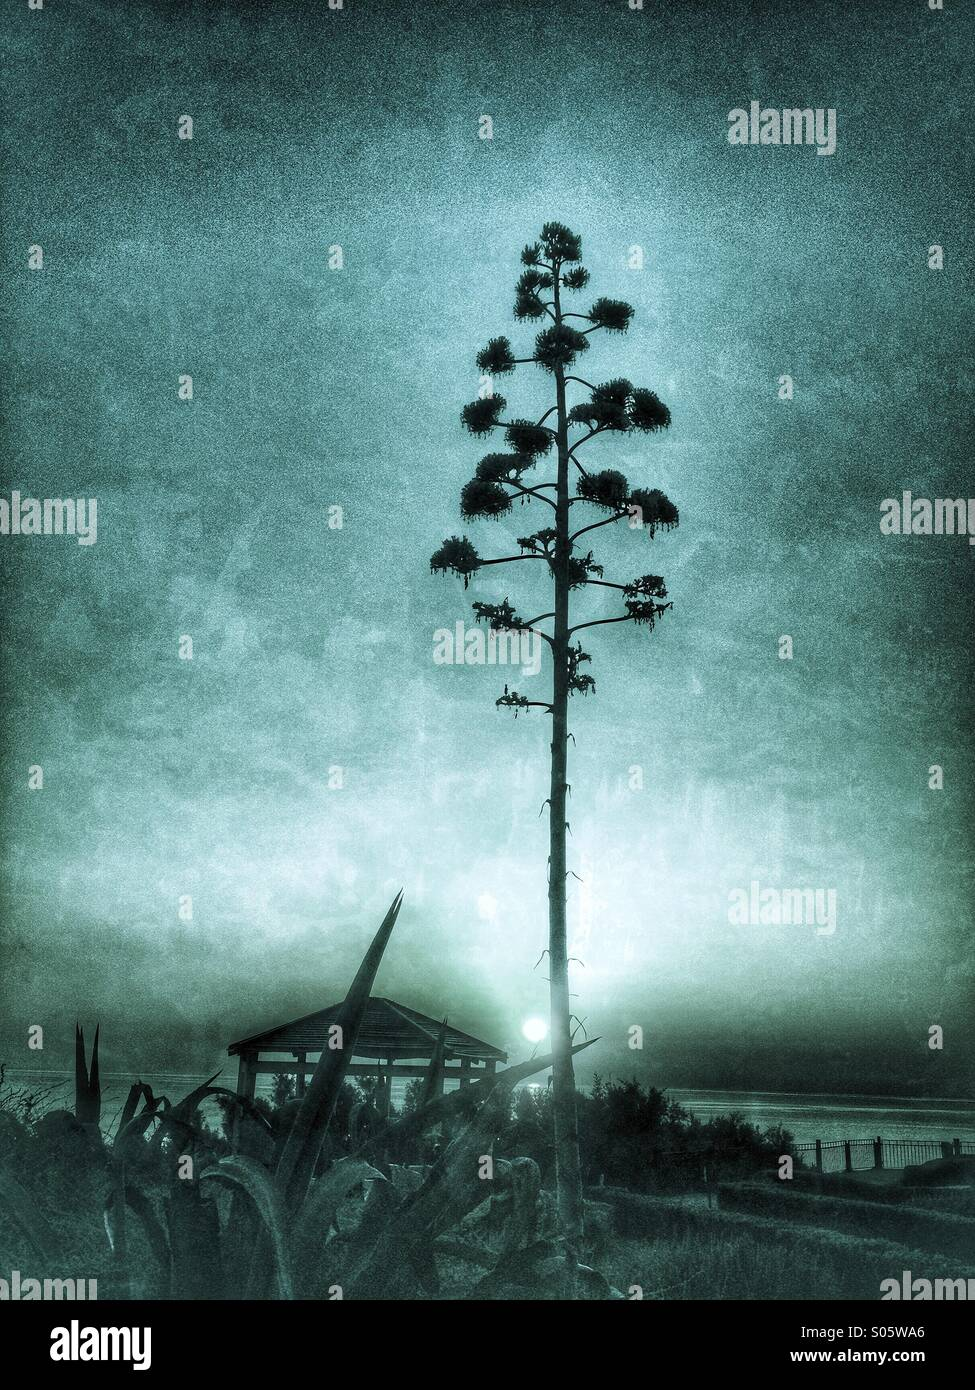 Silhouette of American Agave tree against blue montage sky - Stock Image